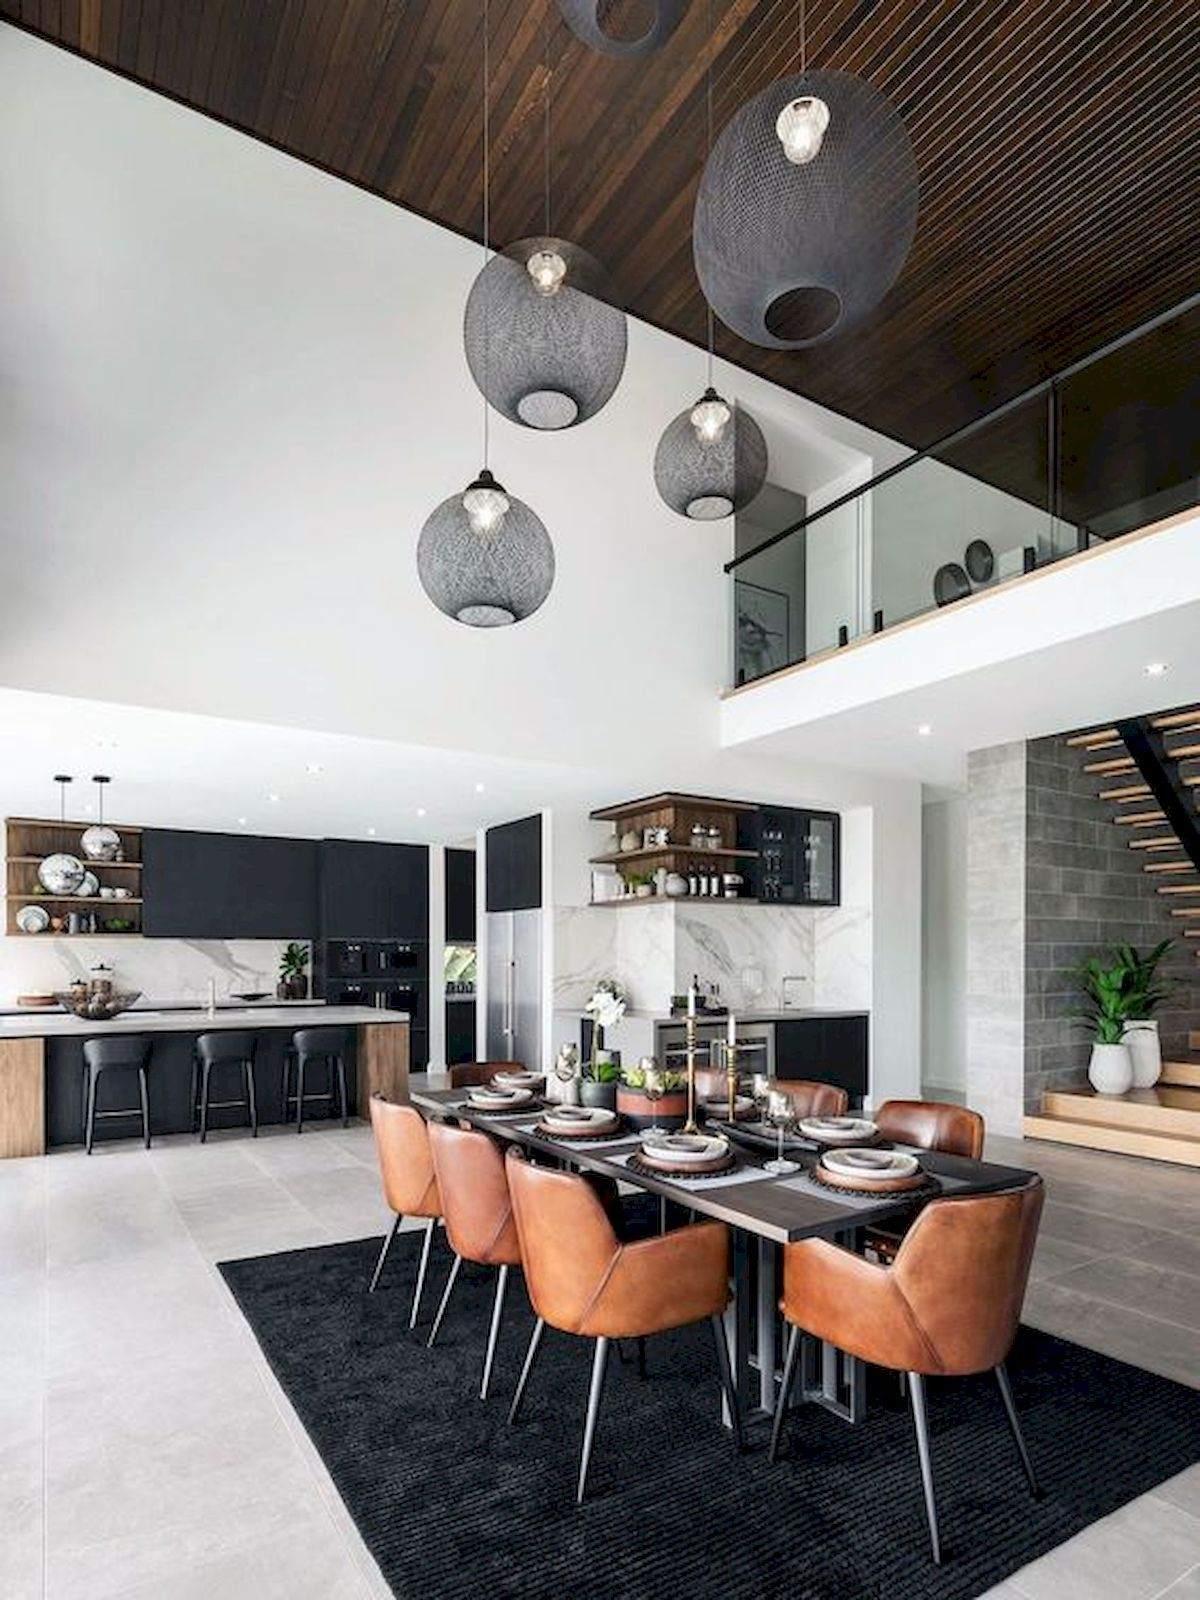 Adorable 80 Cozy Modern Dining Room Design And Decor Ideas For Your Home Source Https Ideabos Open Dining Room Luxury Dining Room Dining Room Design Modern